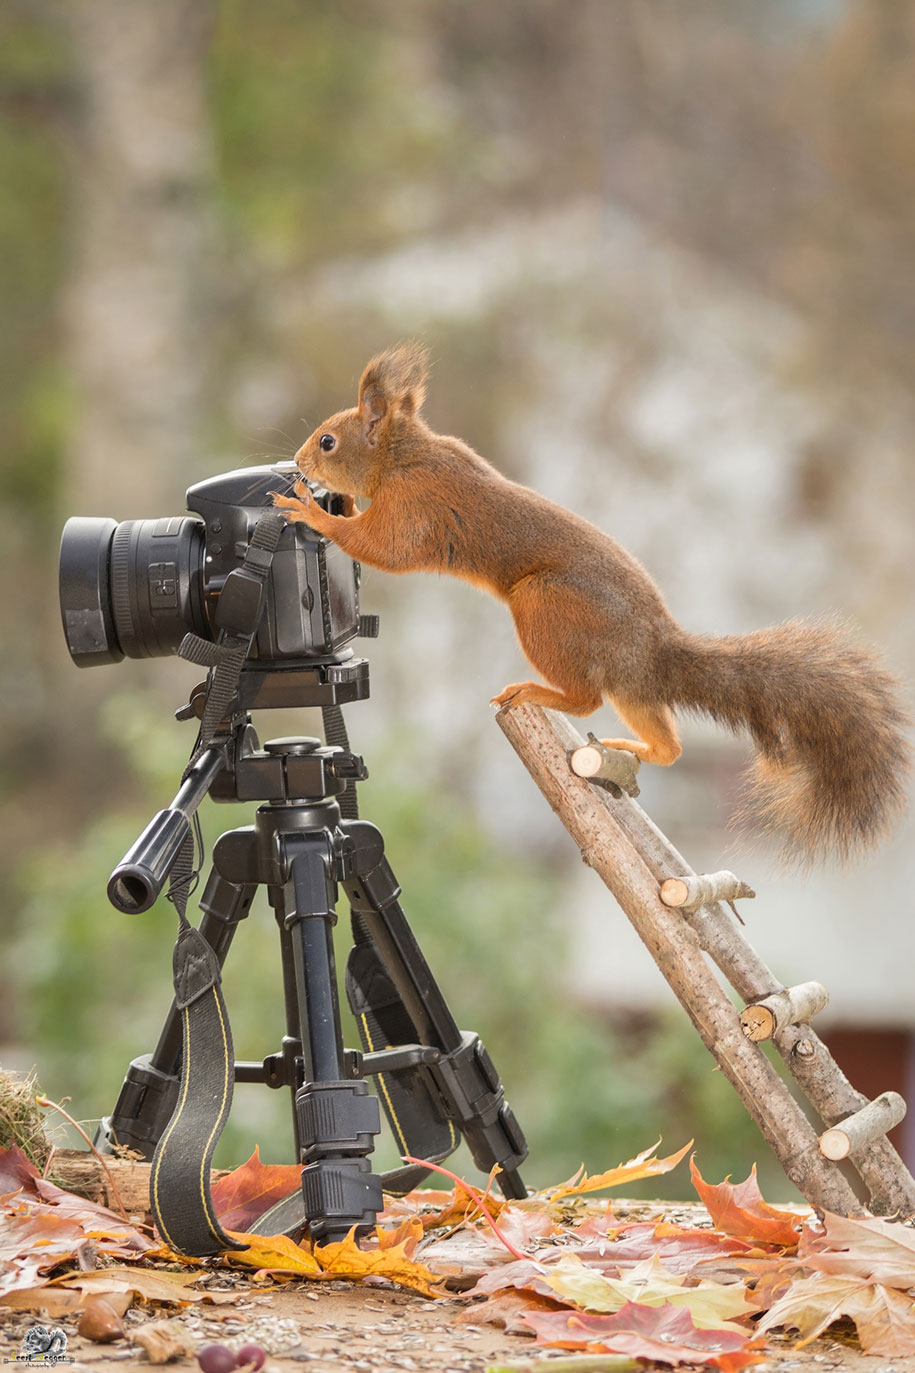 nature-animal-photography-backyard-squirrels-geert-weggen-18